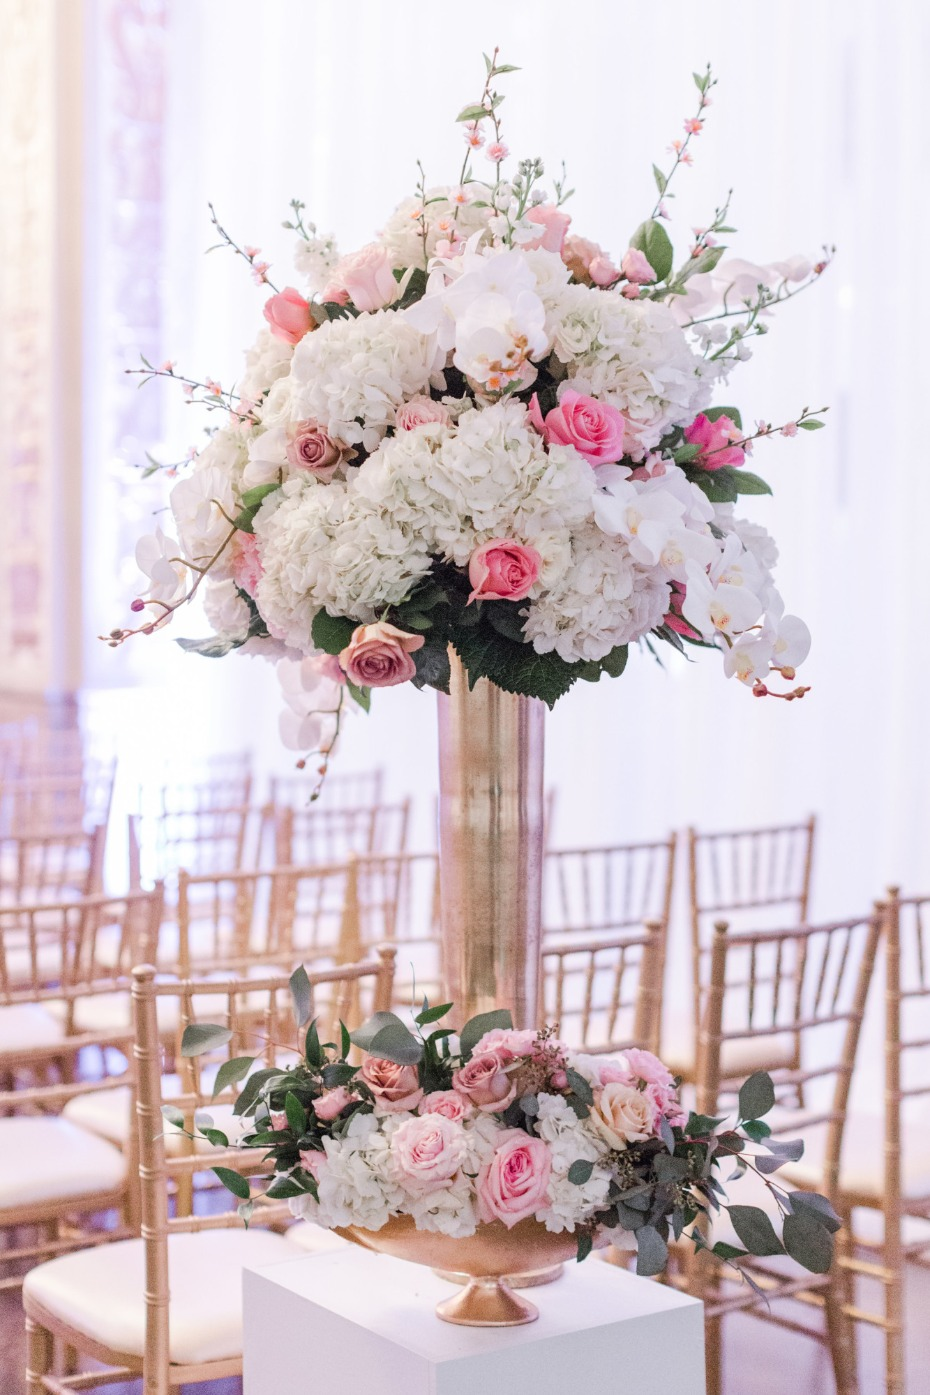 Tall ceremony bouquet